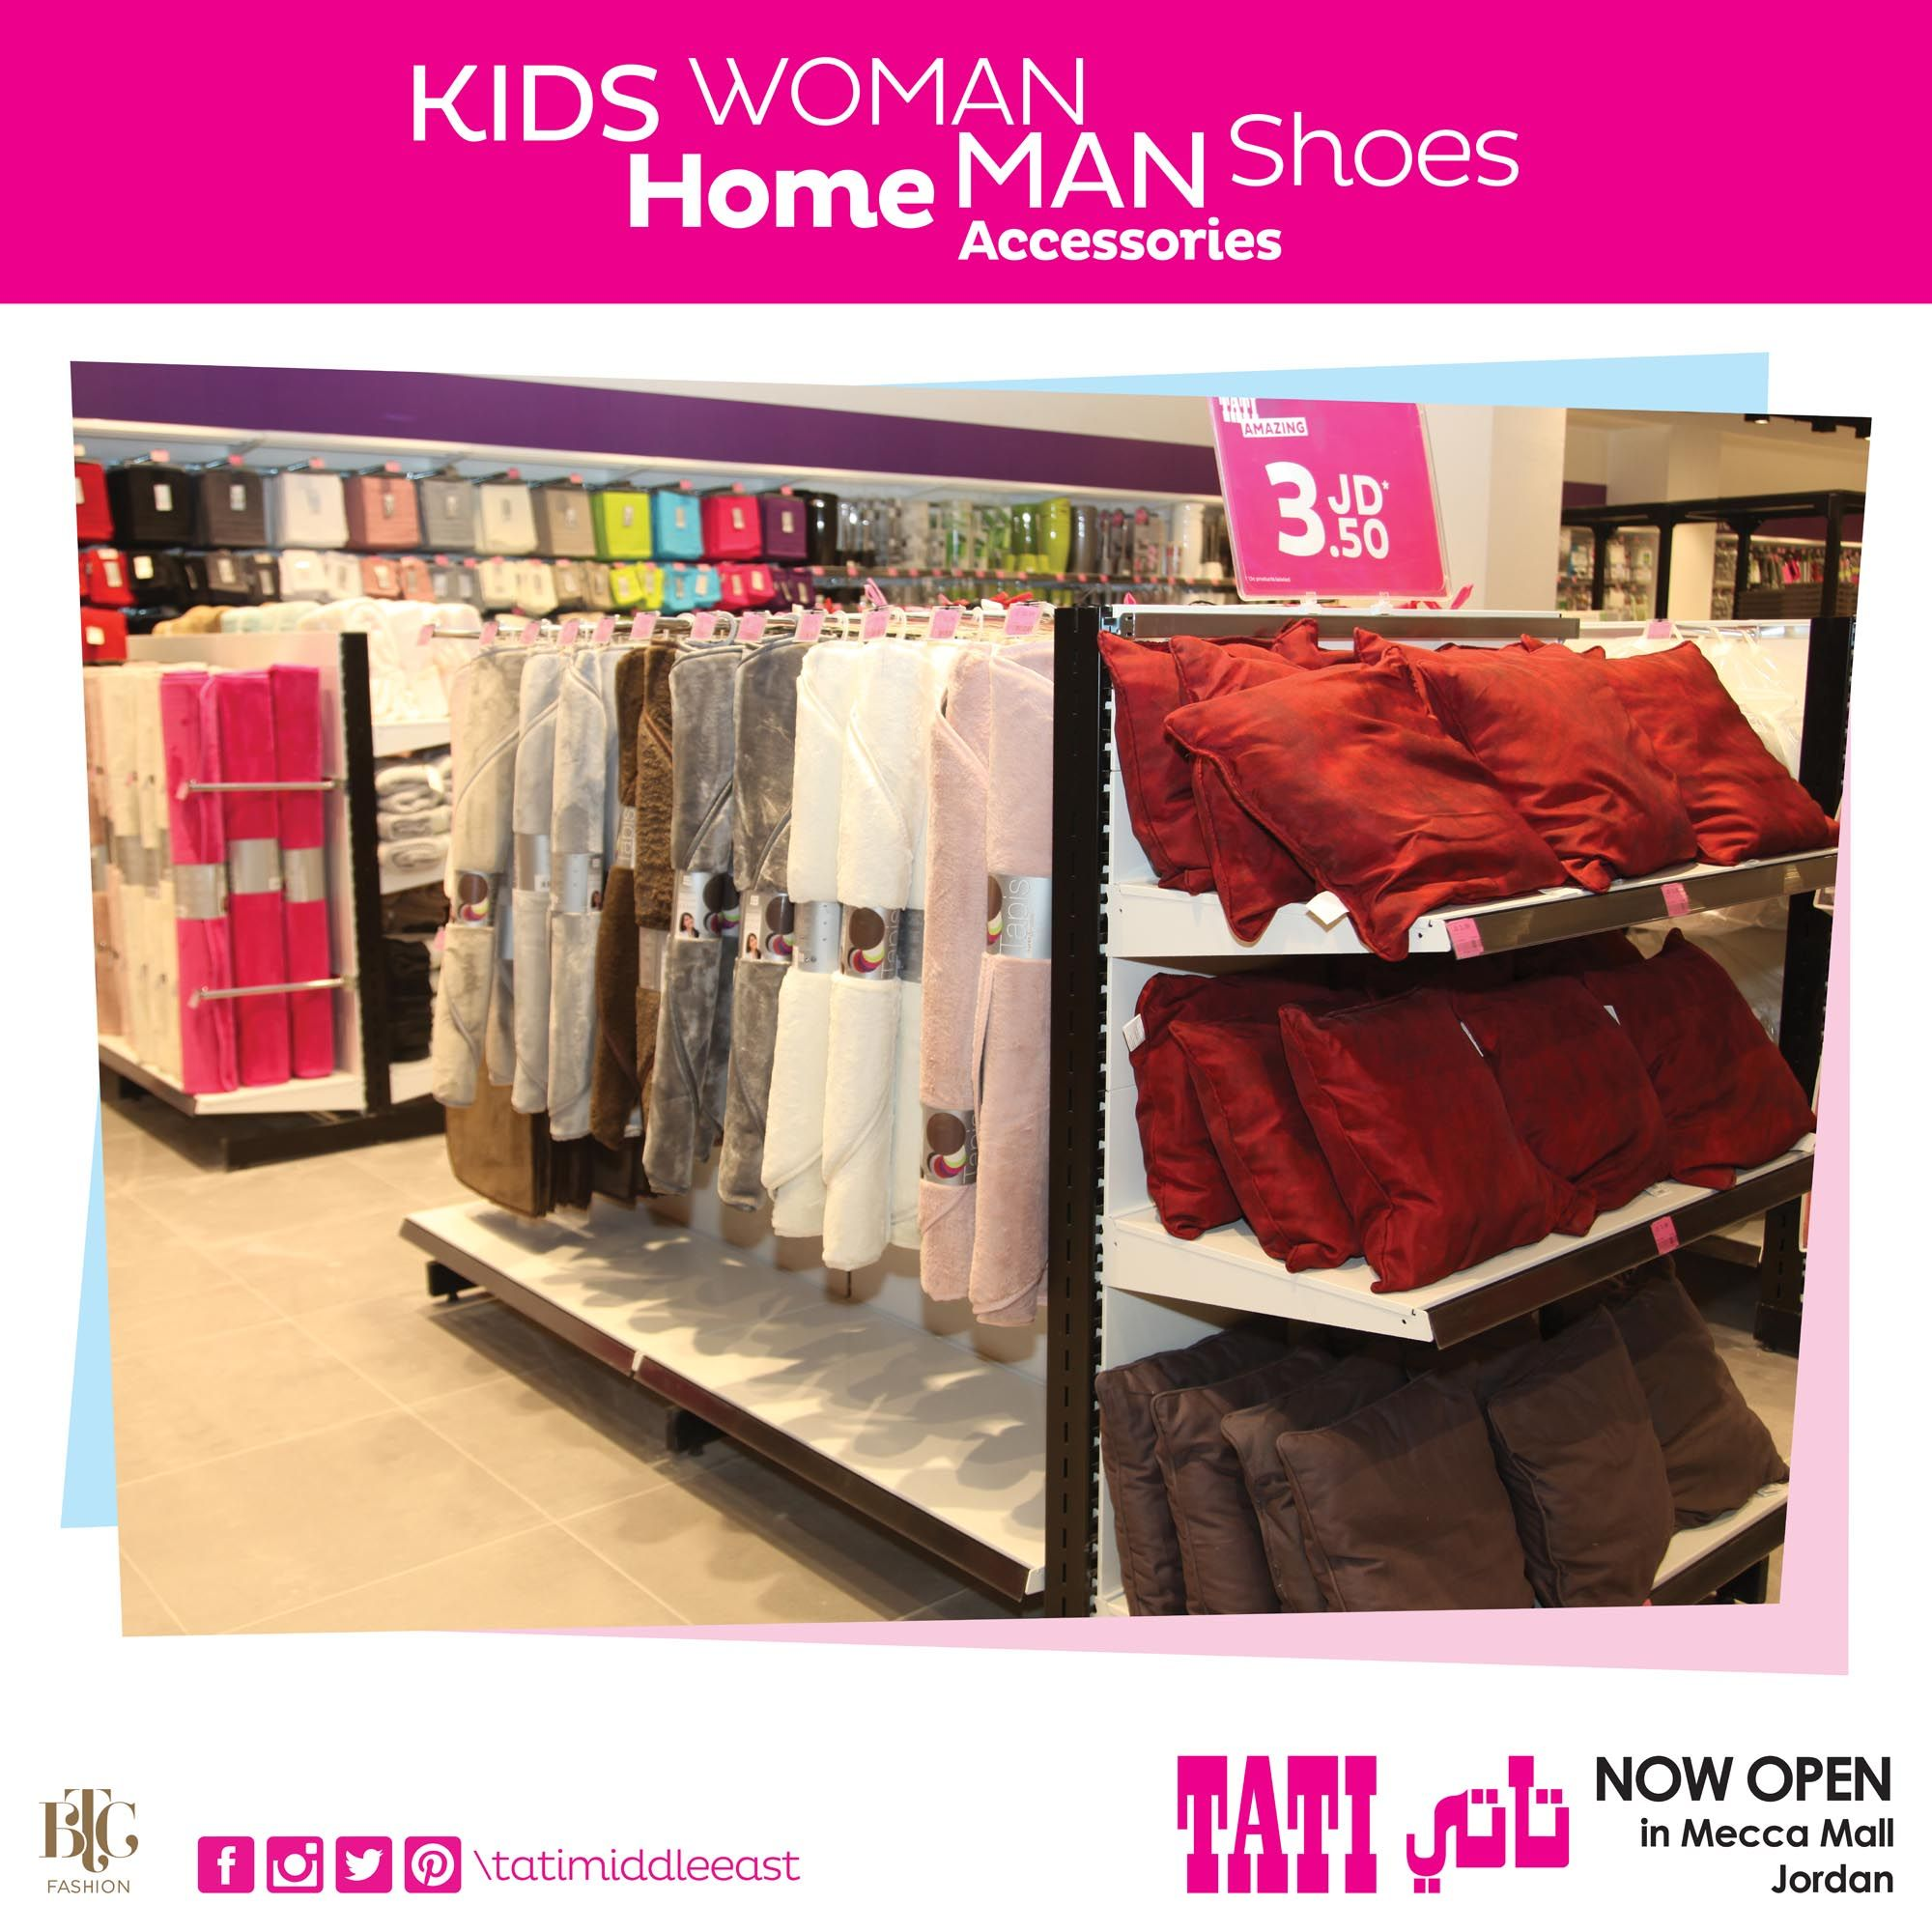 ae088f207e7 TATI launched its 1st newest shopping destination in Jordan at Mecca Mall.  Shop @ TATI with 25% off on ALL Items as opening promo!